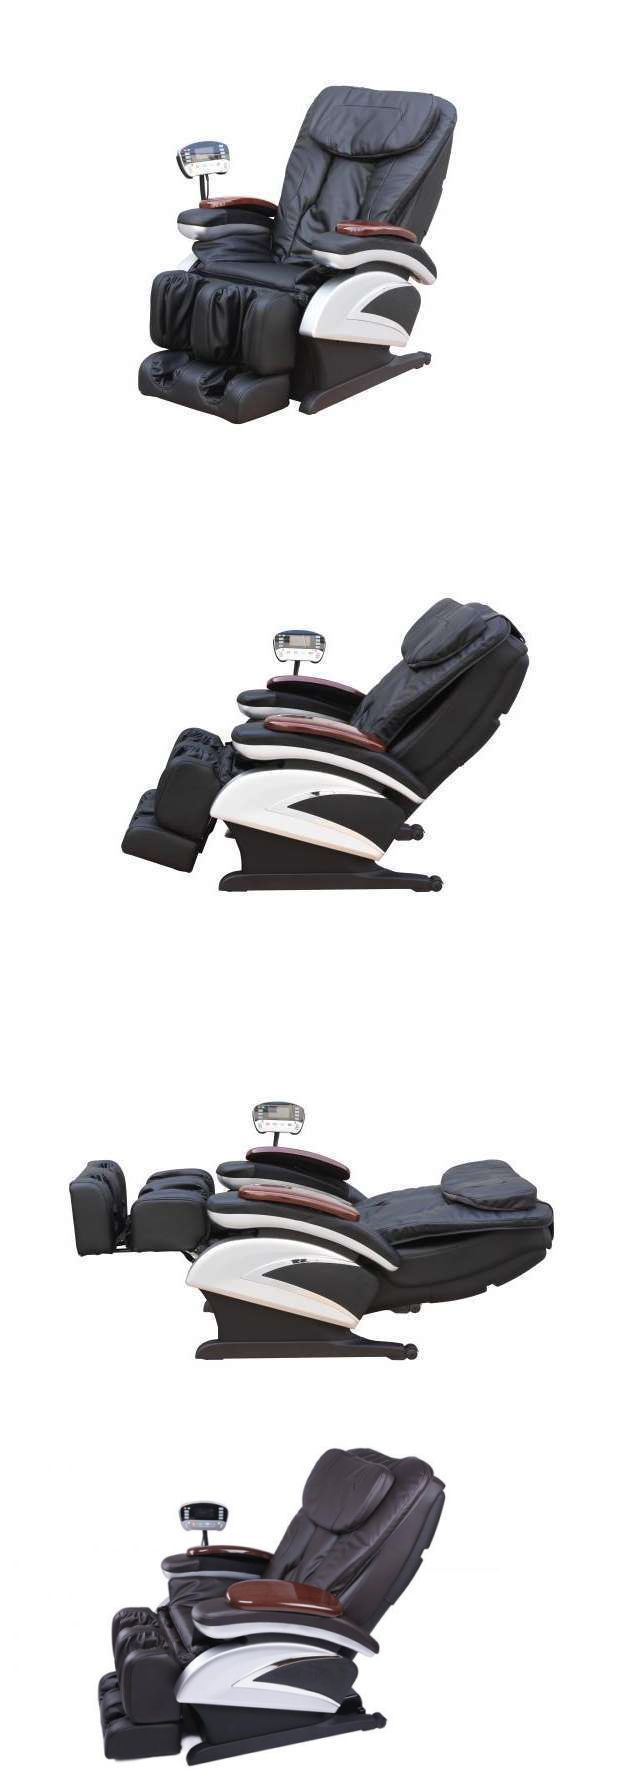 Electric Massage Chairs: Full Body Electric Shiatsu Massage Chair Recliner Message W/ Back Roller And Heat BUY IT NOW ONLY: $799.95